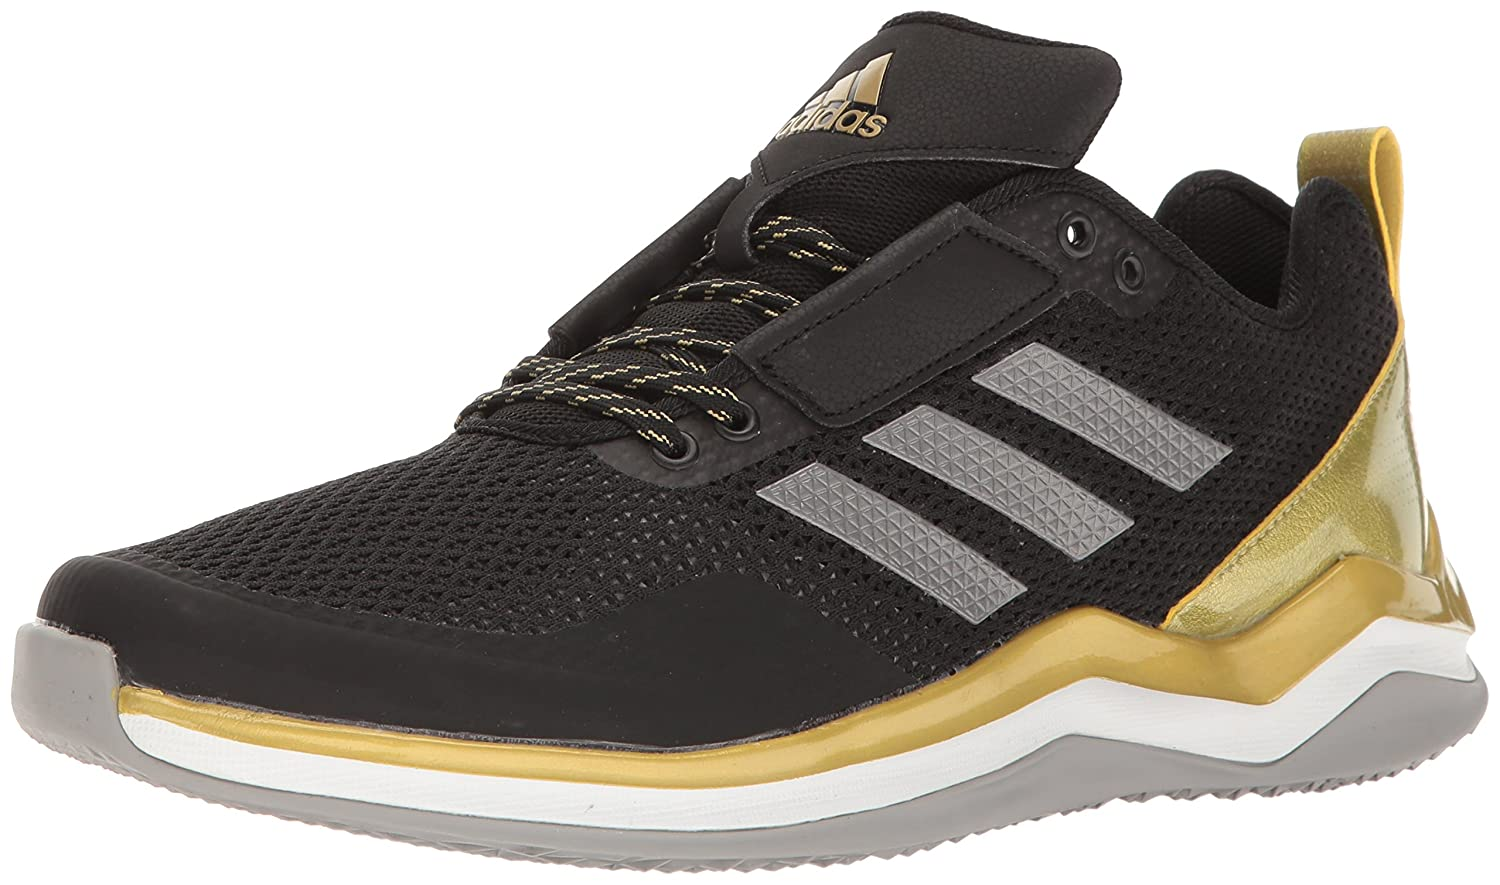 adidas メンズ Speed Trainer 3.0 B01LXXVY9J 7 D(M) US|Black/Iron/Metallic Gold Black/Iron/Metallic Gold 7 D(M) US